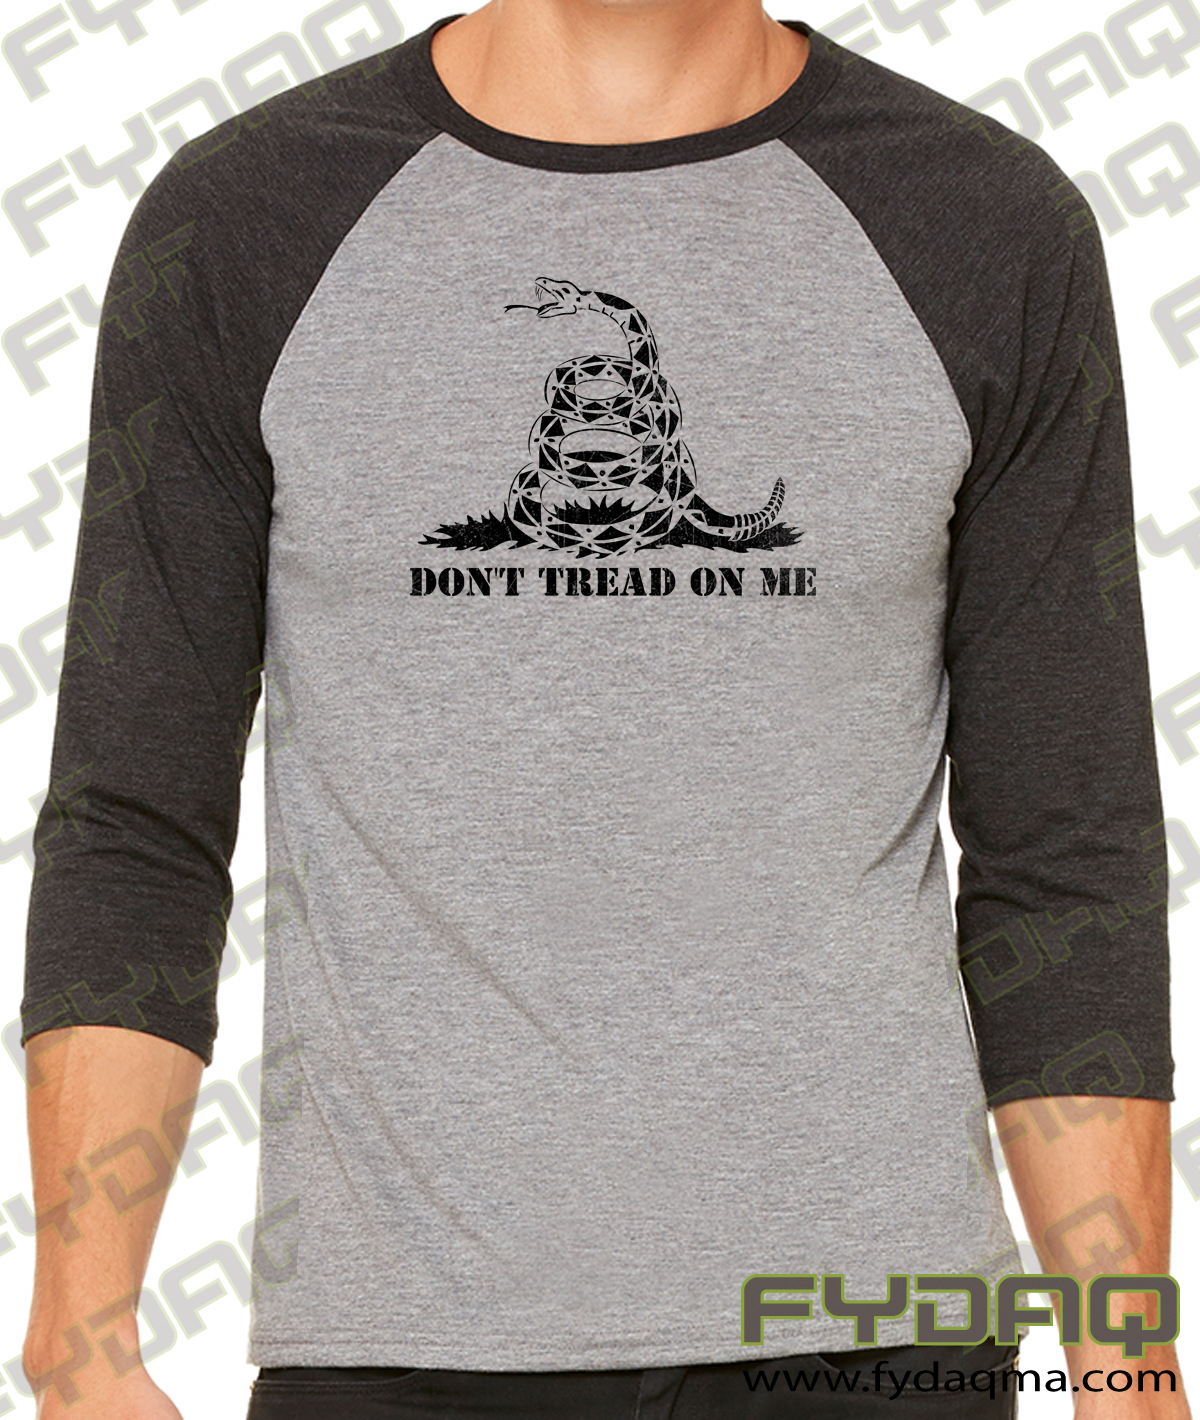 gadsden-flag-don't-tread-on-me-raglan-dark-charcoal-fydaq